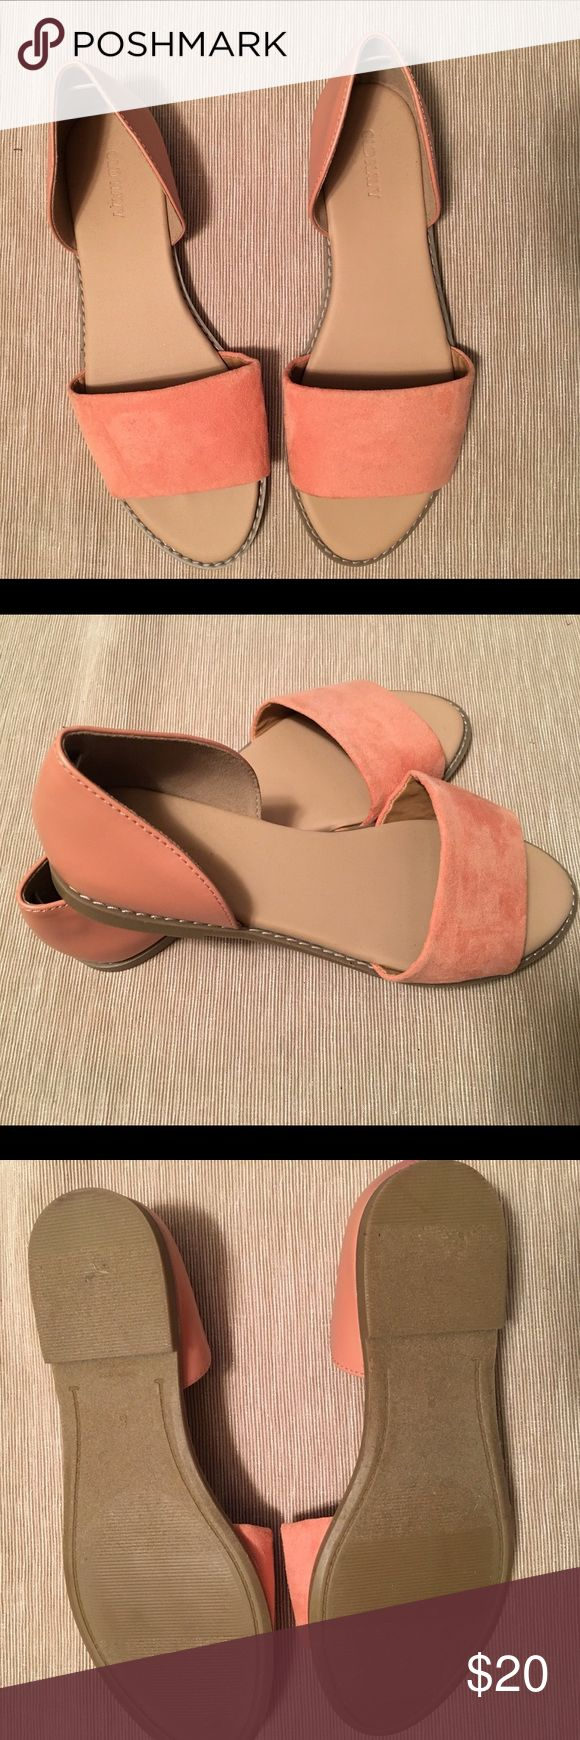 Open toe Flat shoes Salmon colored Old Navy flat shoes. Back is a leather material and front is a suede material. Never worn. New without tag. Old Navy Shoes Flats & Loafers